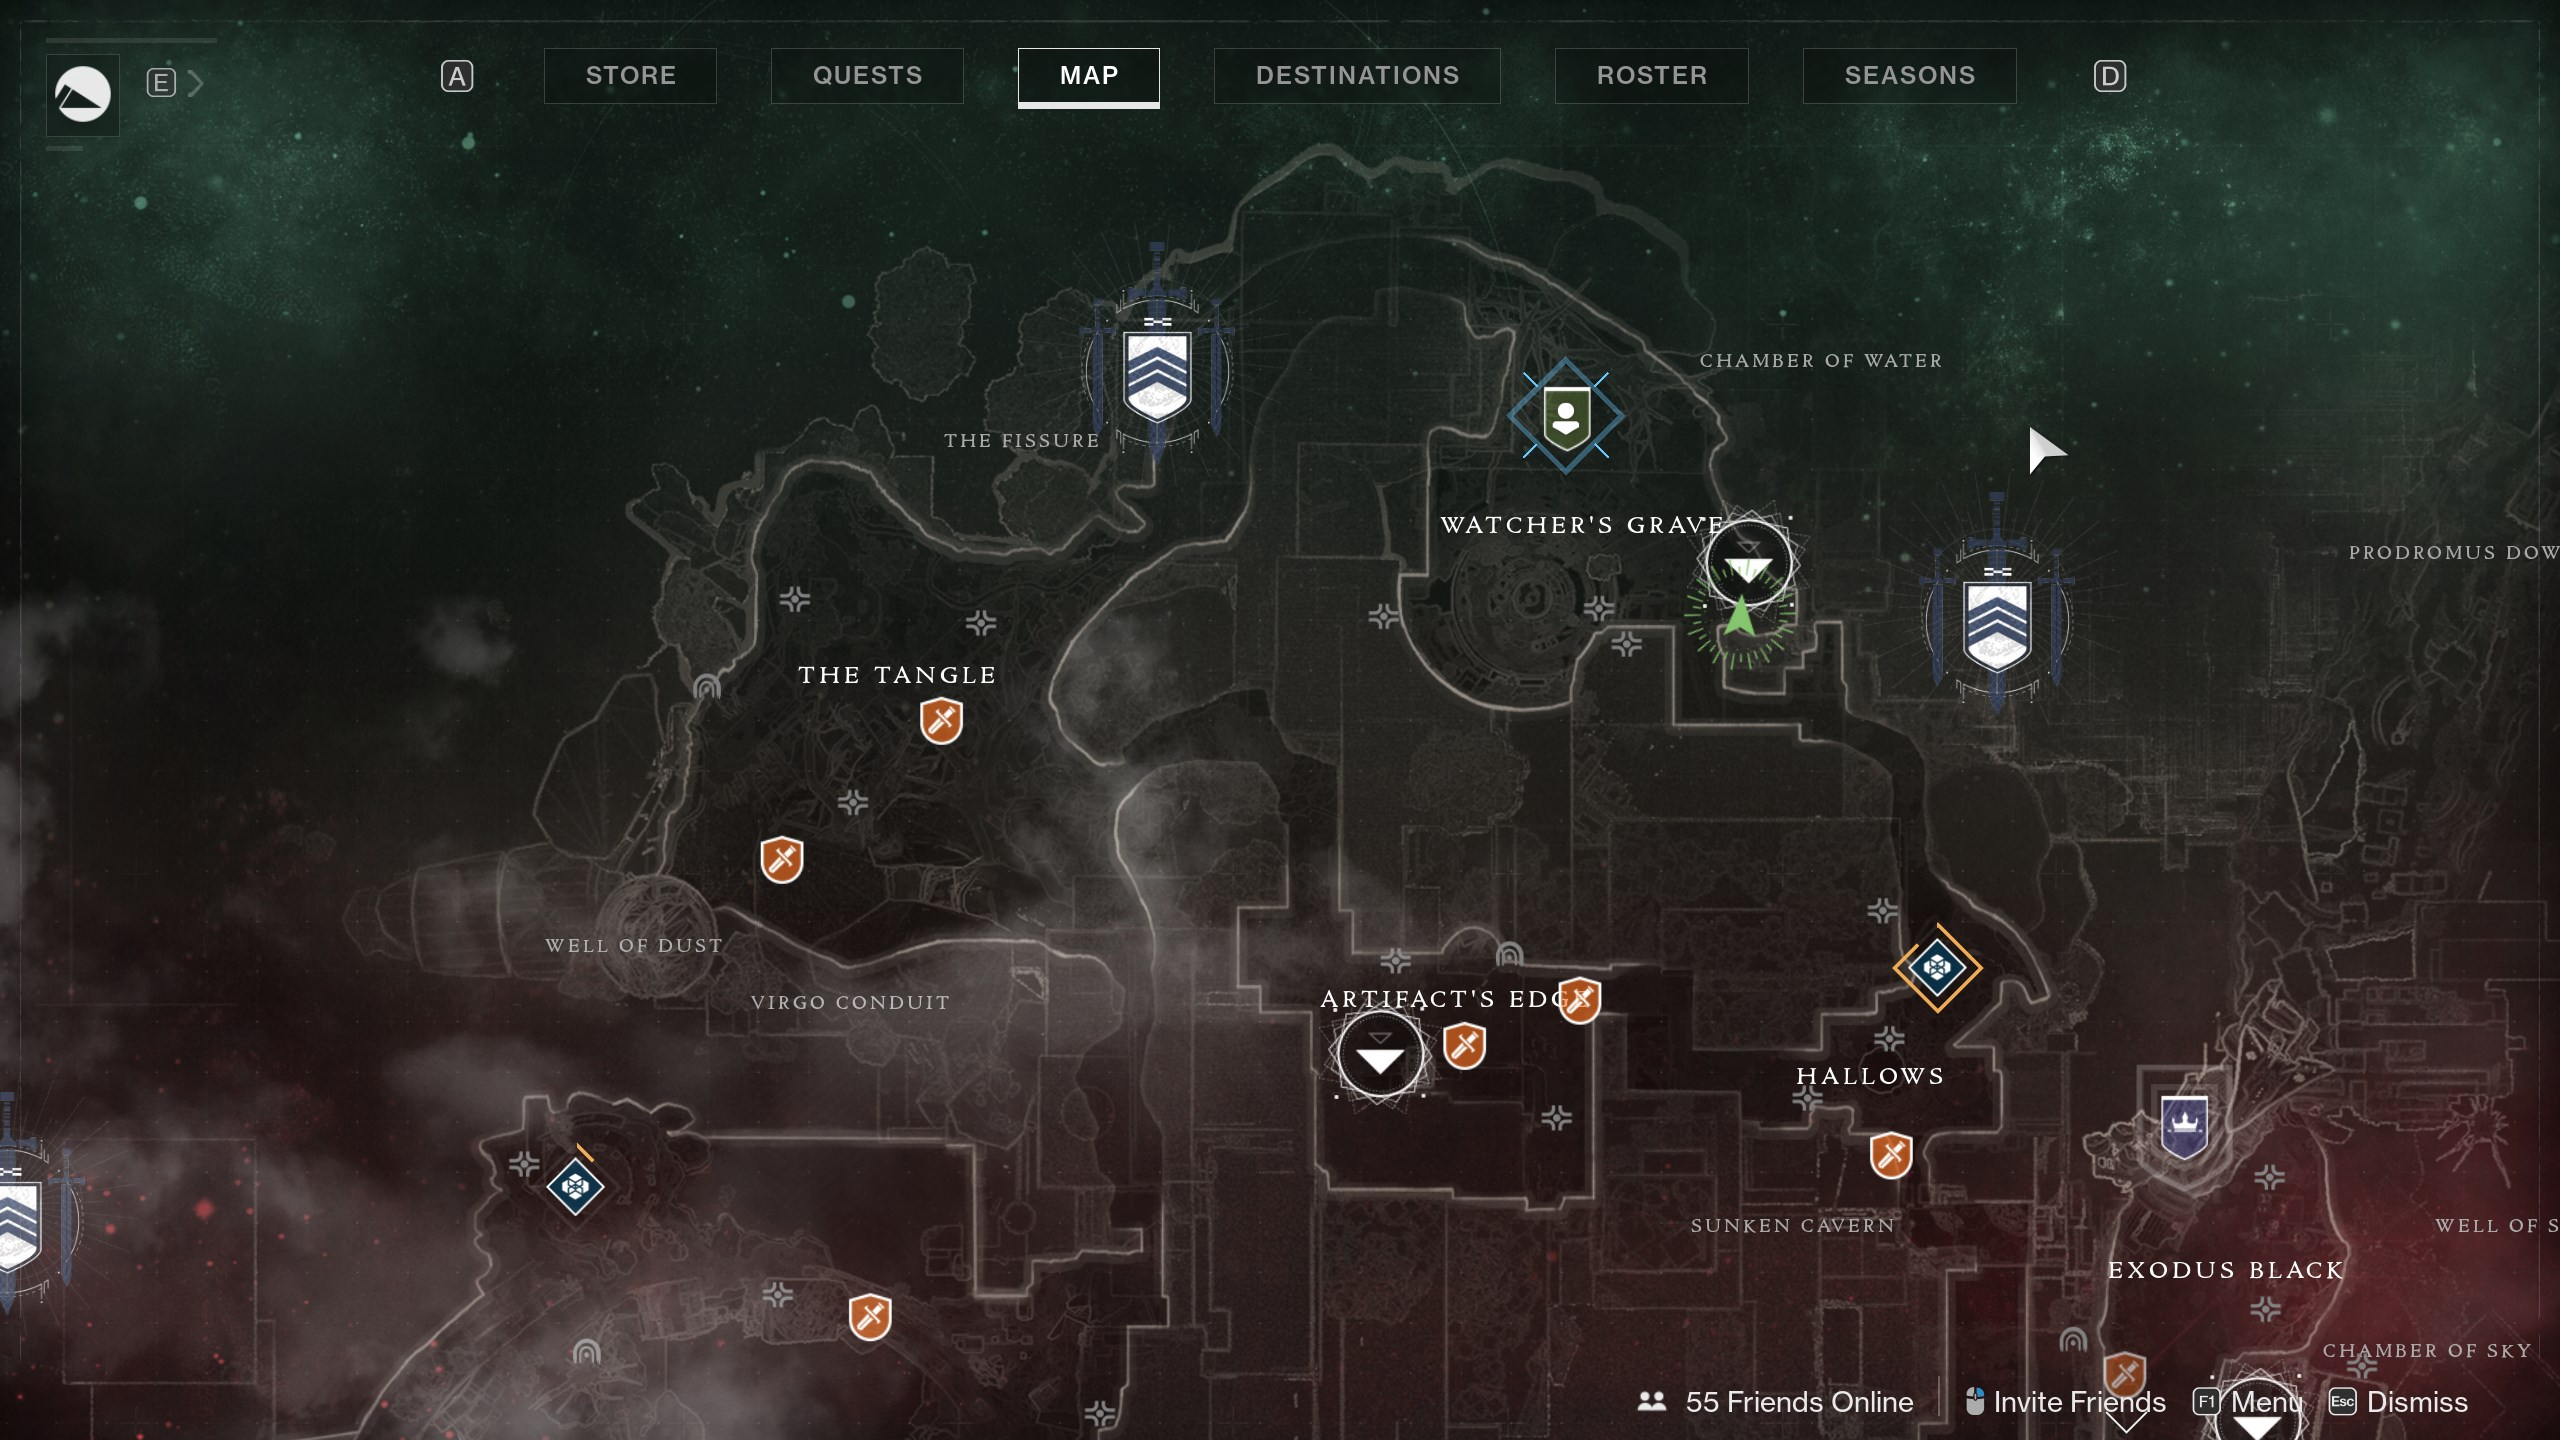 Xur's location and wares for July 10, 2020 - Destiny 2